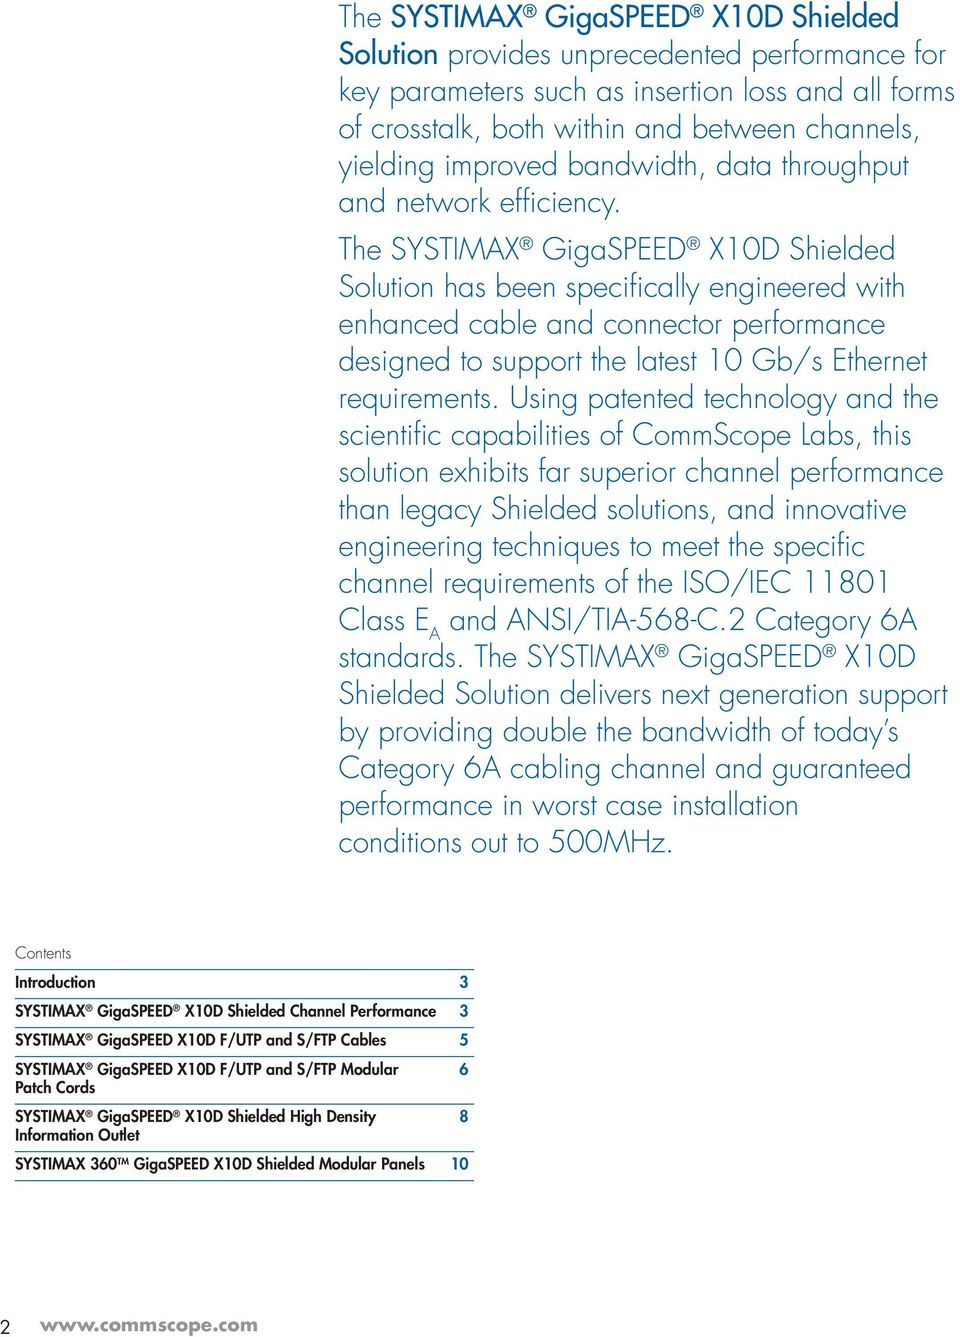 The SYSTIMAX GigaSPEED X10D Shielded Solution has been specifically engineered with enhanced cable and connector performance designed to support the latest 10 Gb/s Ethernet requirements.